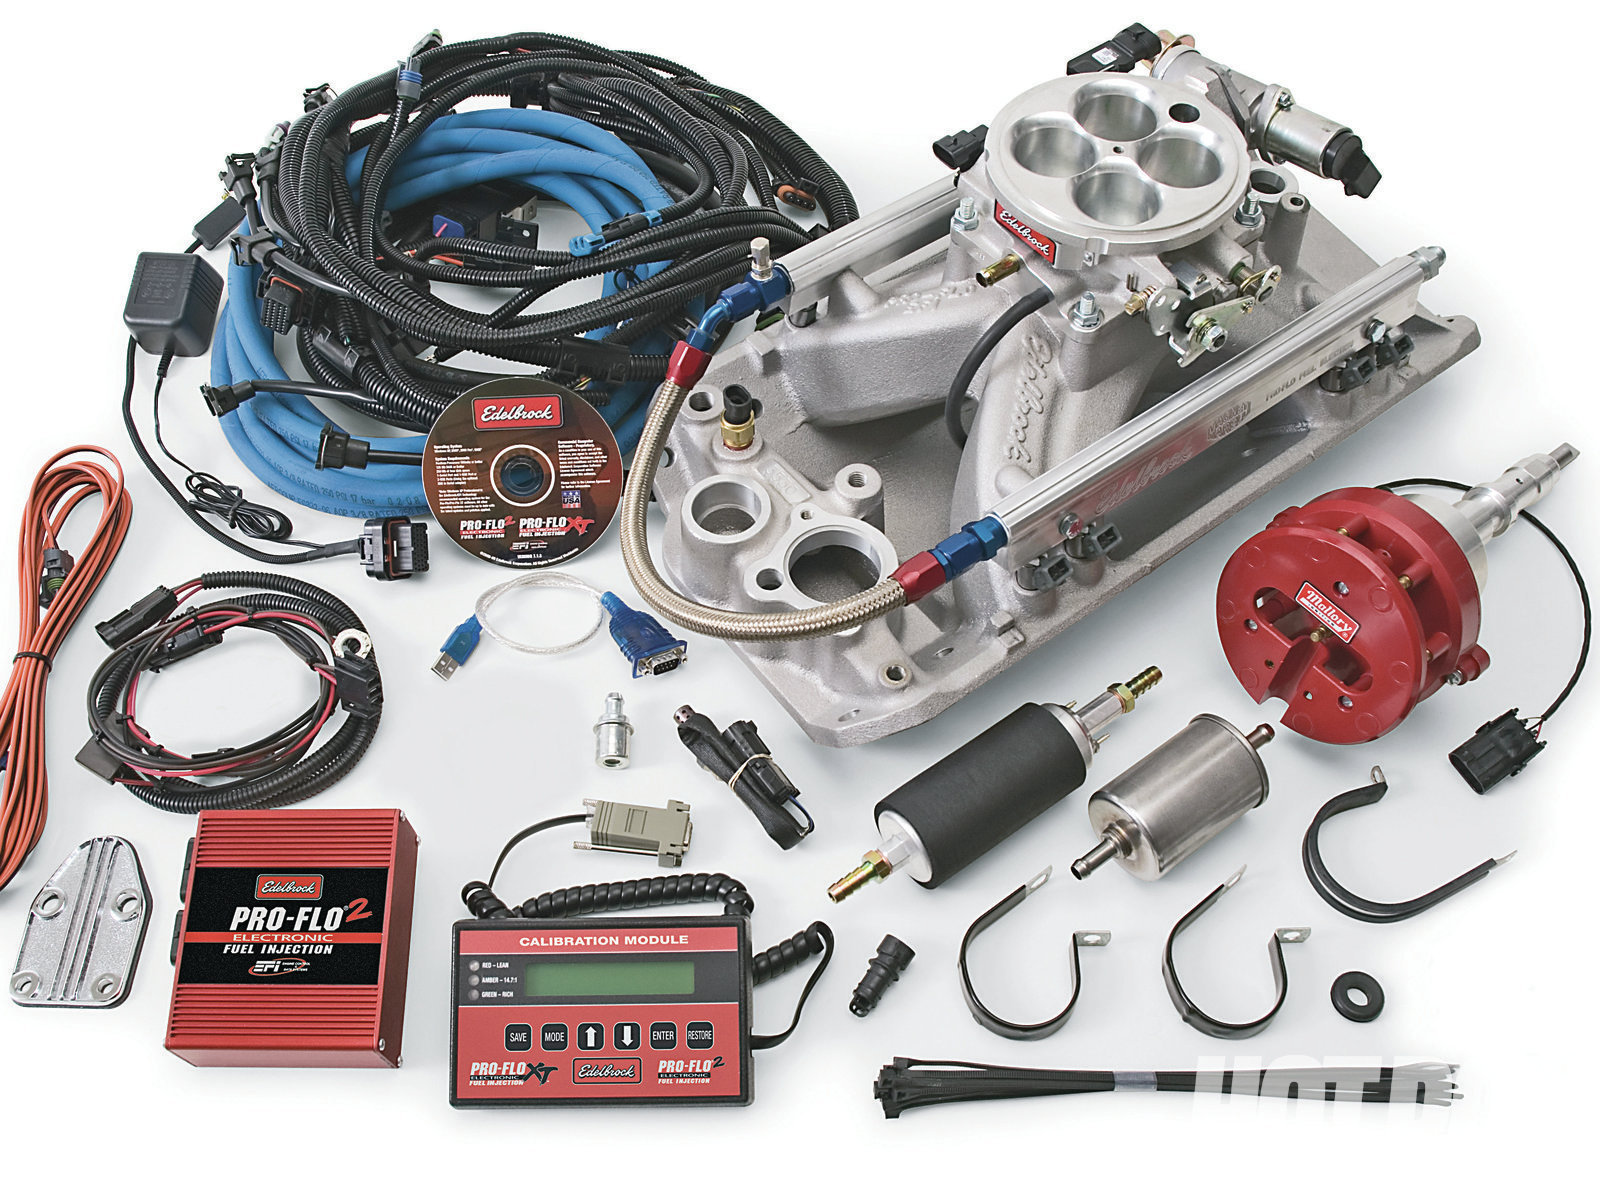 hight resolution of edelbrock s pro flo 2 amc efi system features fully sequential firing and is tunable via